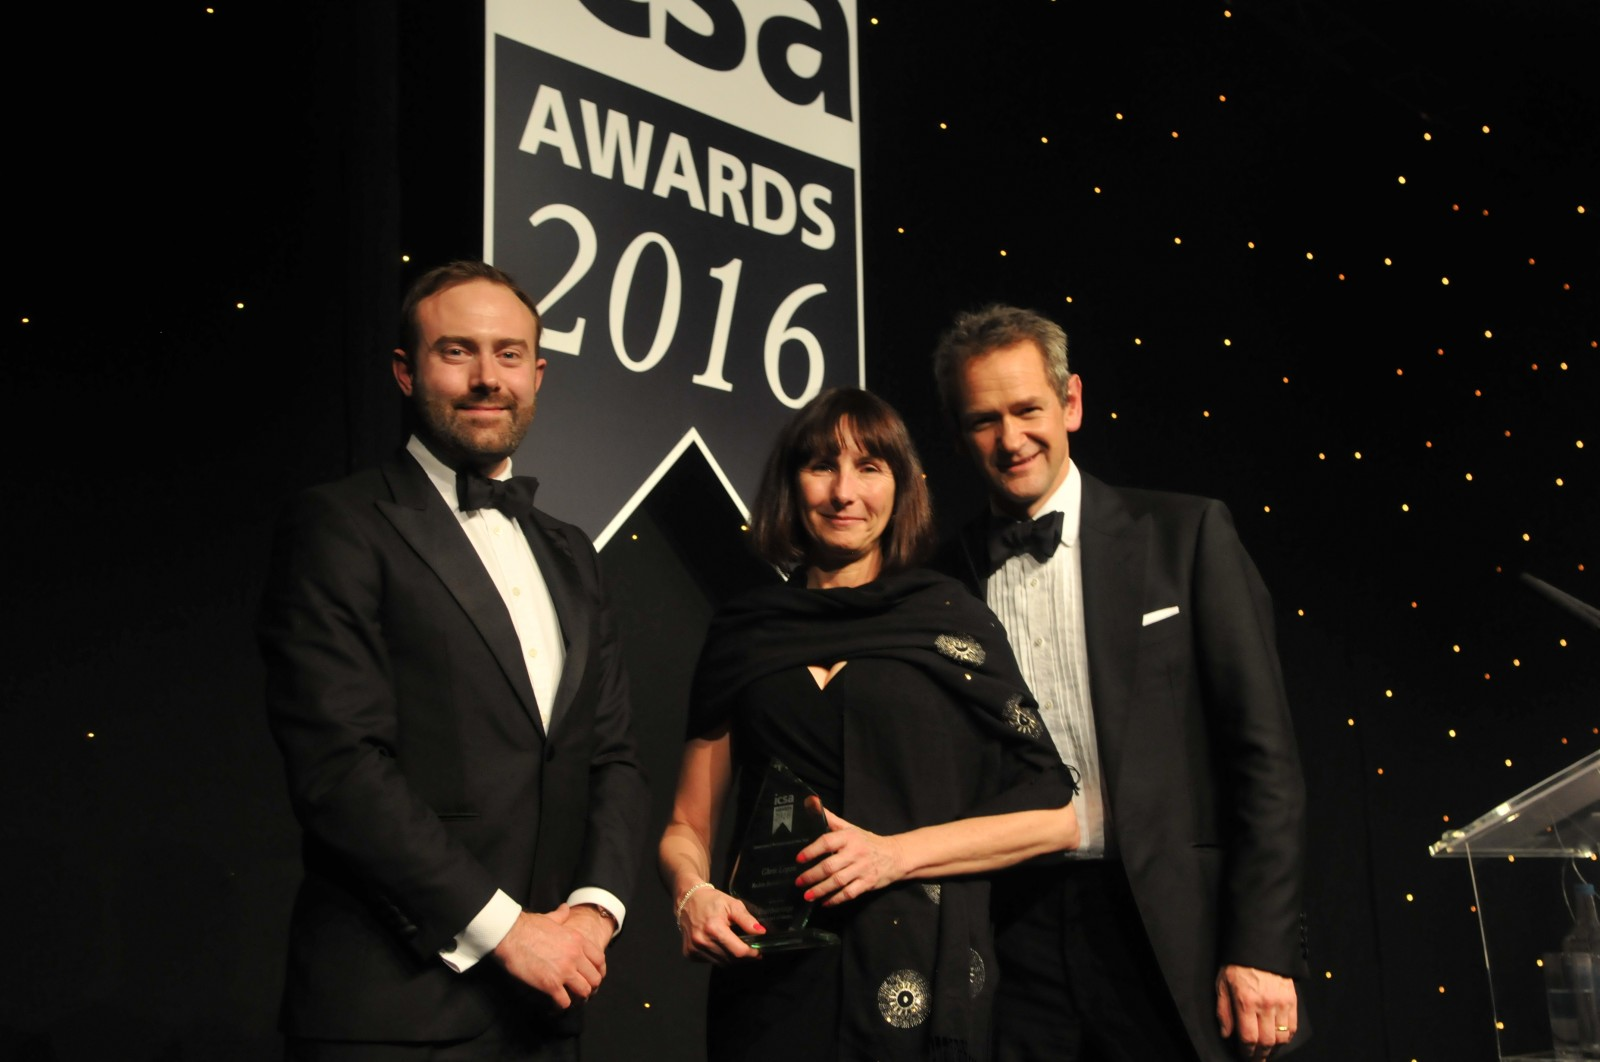 ICSA Awards - Governance Professional of the Year